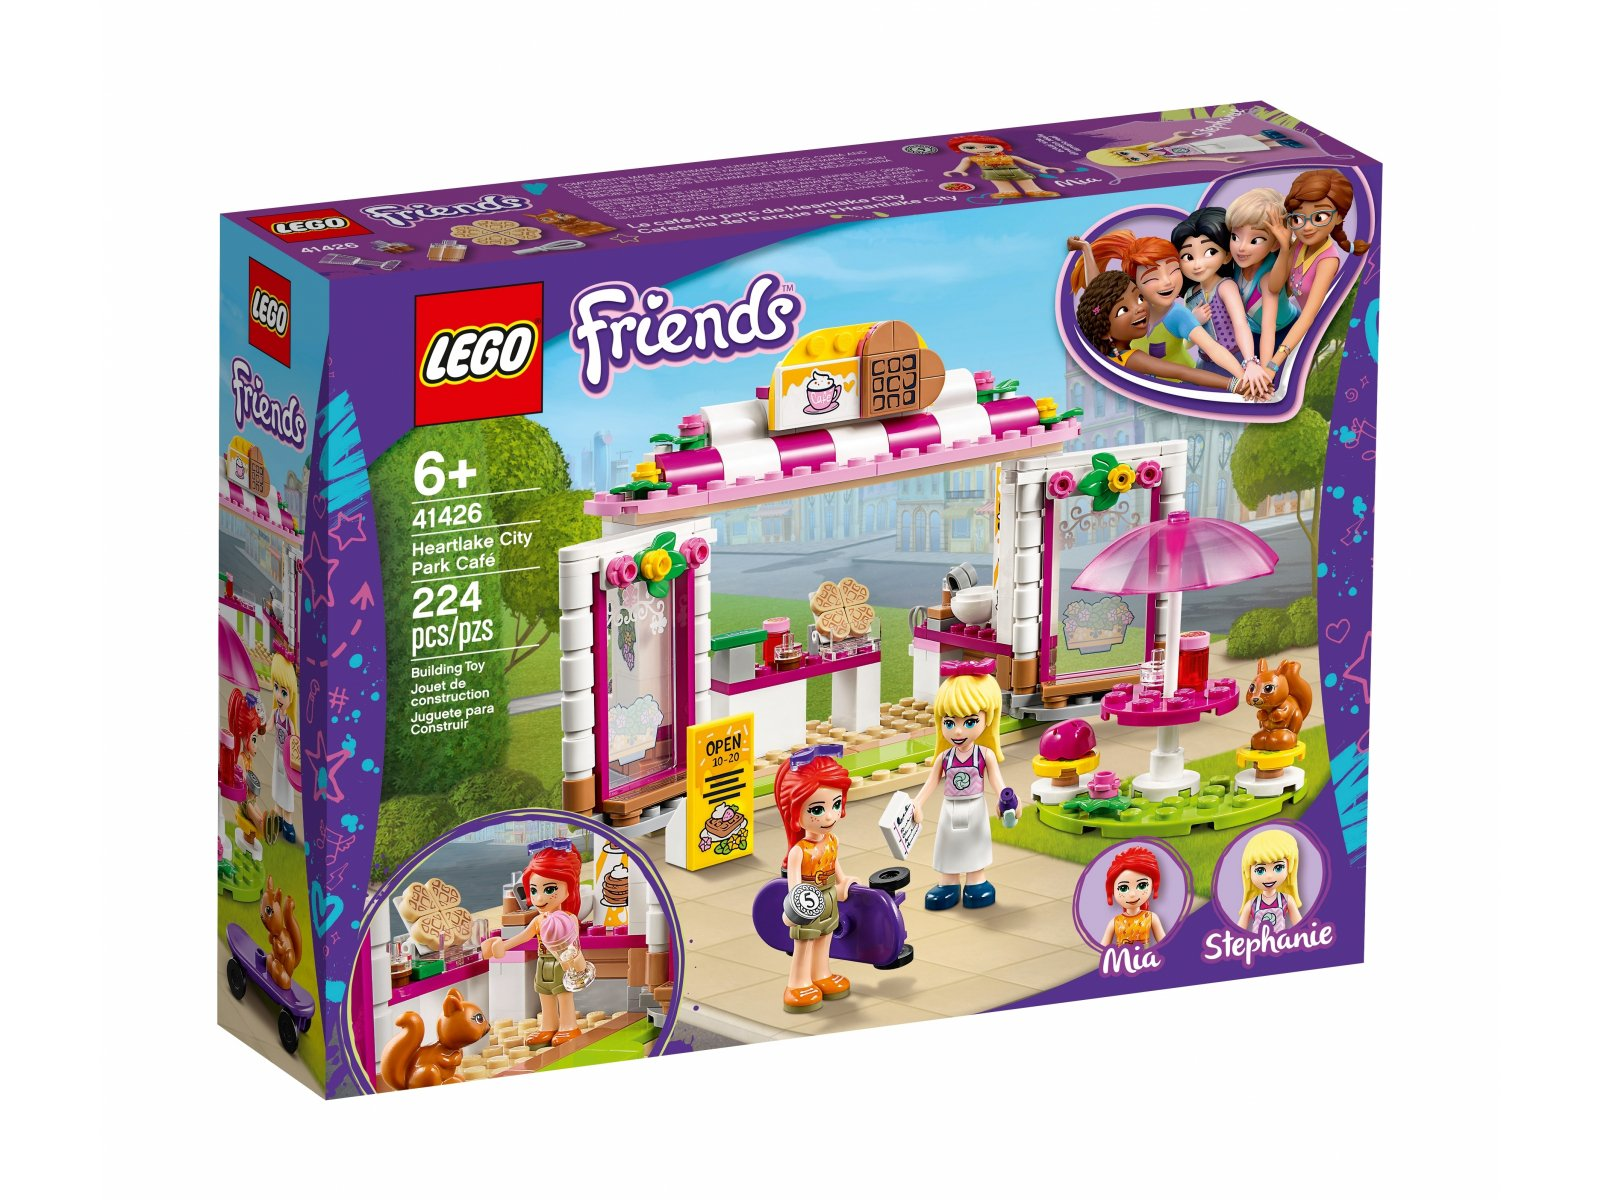 LEGO 41426 Friends Parkowa kawiarnia w Heartlake City